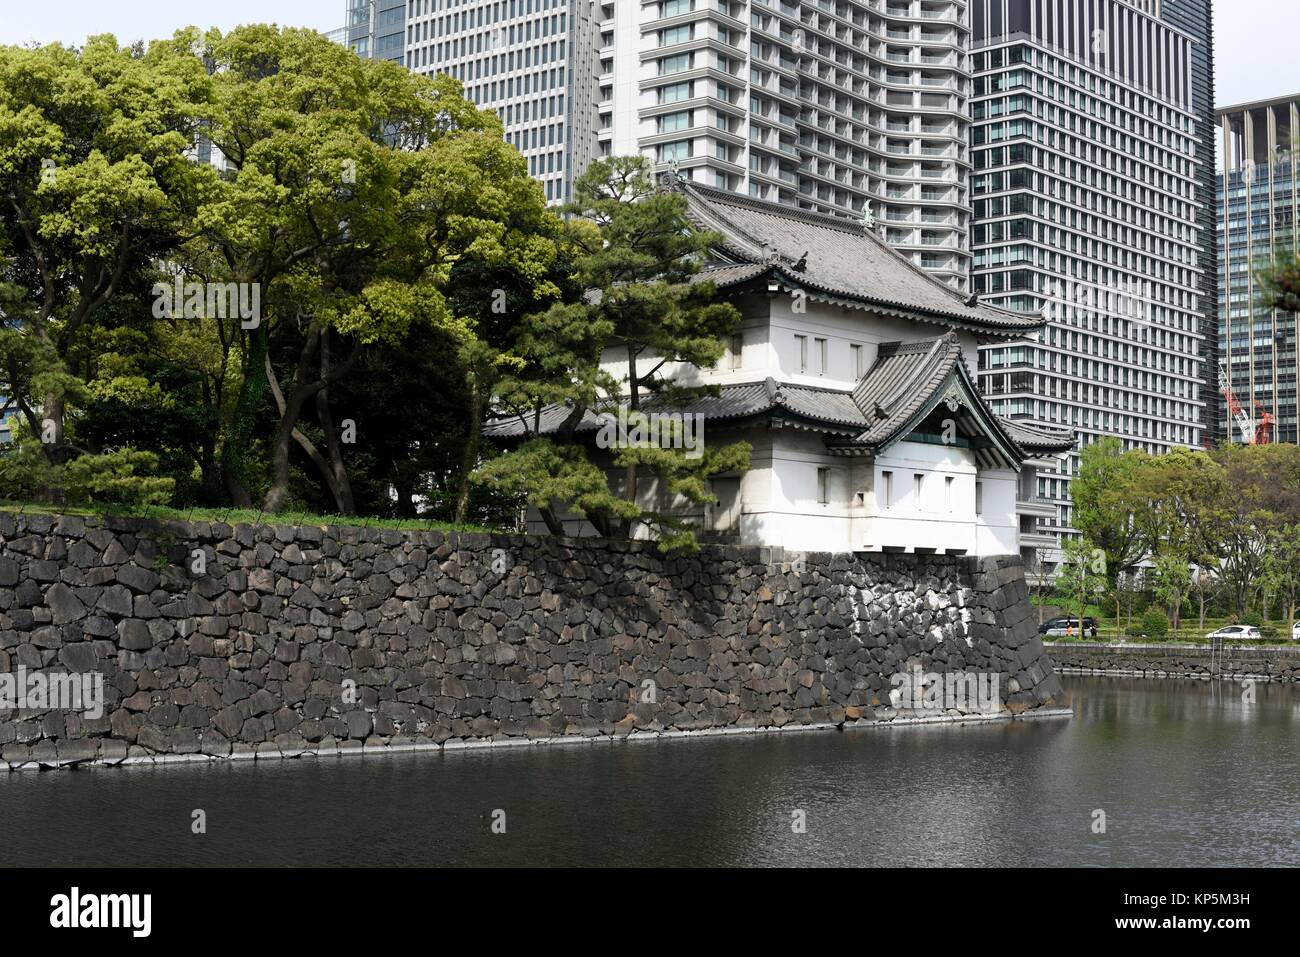 Tokyo Imperial Palace of Japan,Asia. - Stock Image